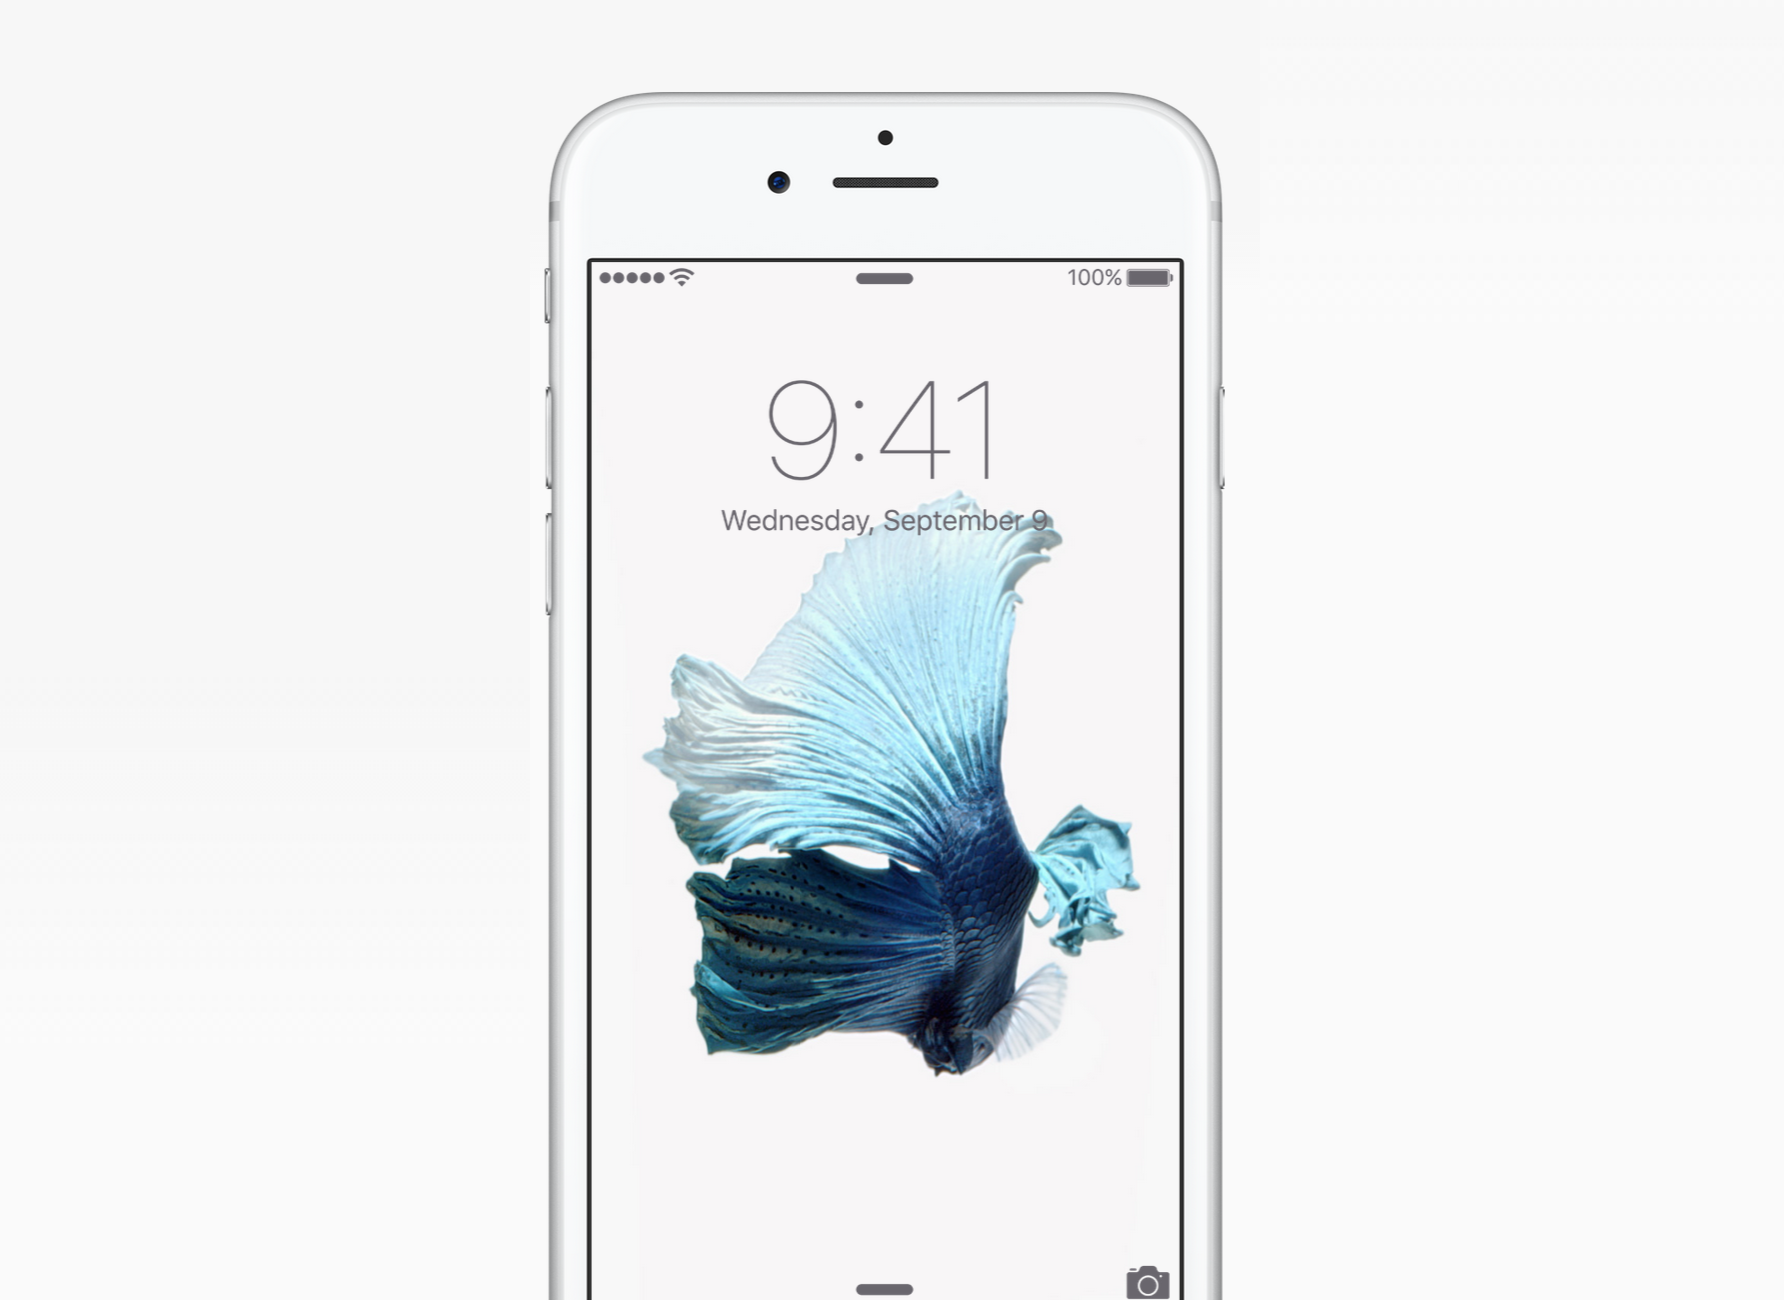 For the iPhone 6s Apple stole some of Androids best ideas and 1784x1300